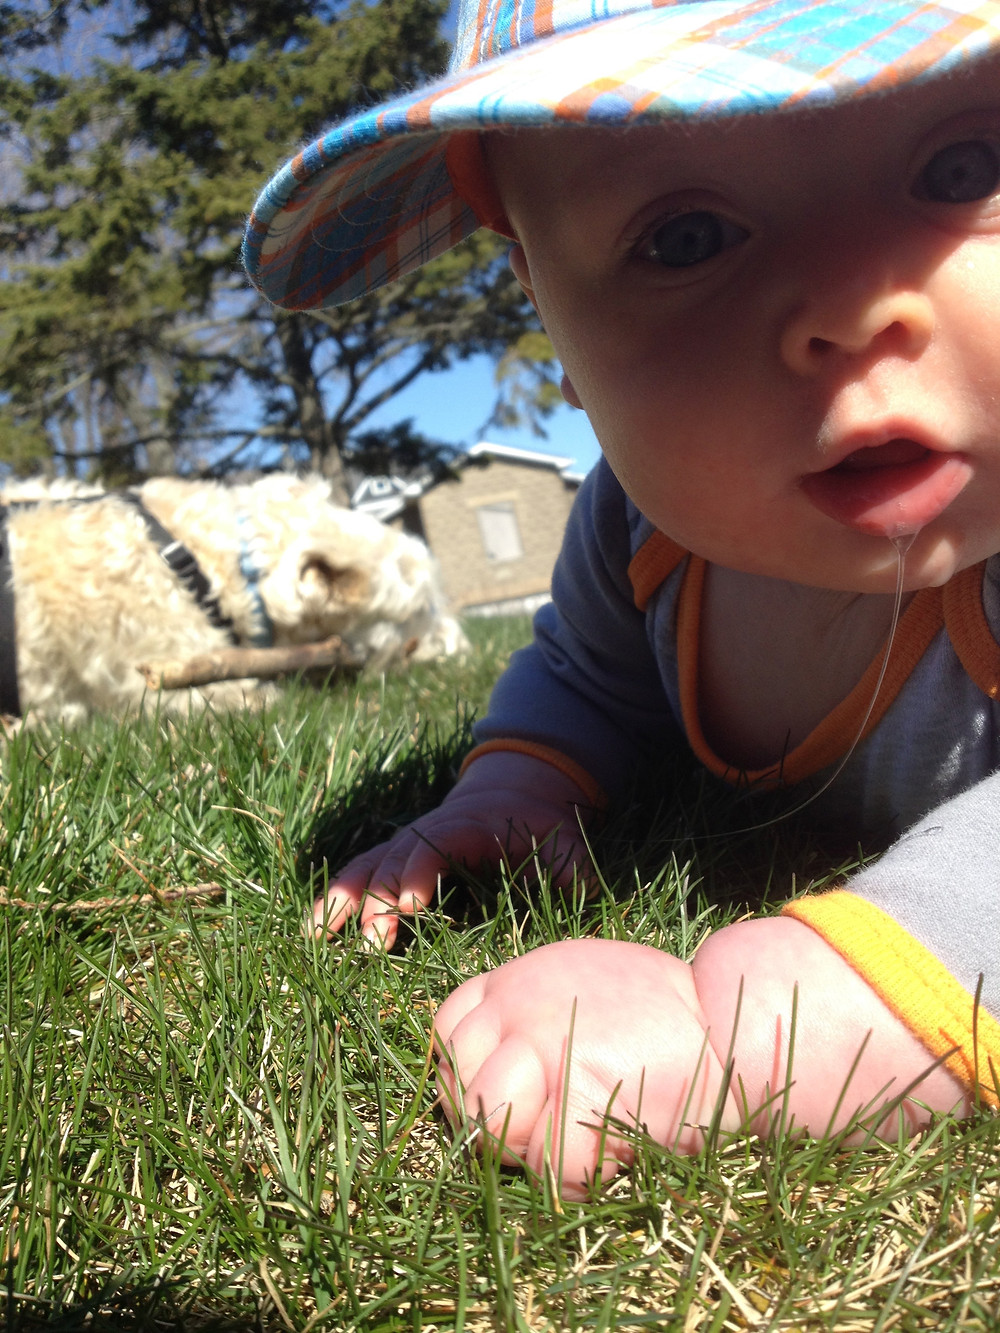 4 month old tummy time on grass, Photo by Monica, on Instagram @mamanonthetrail